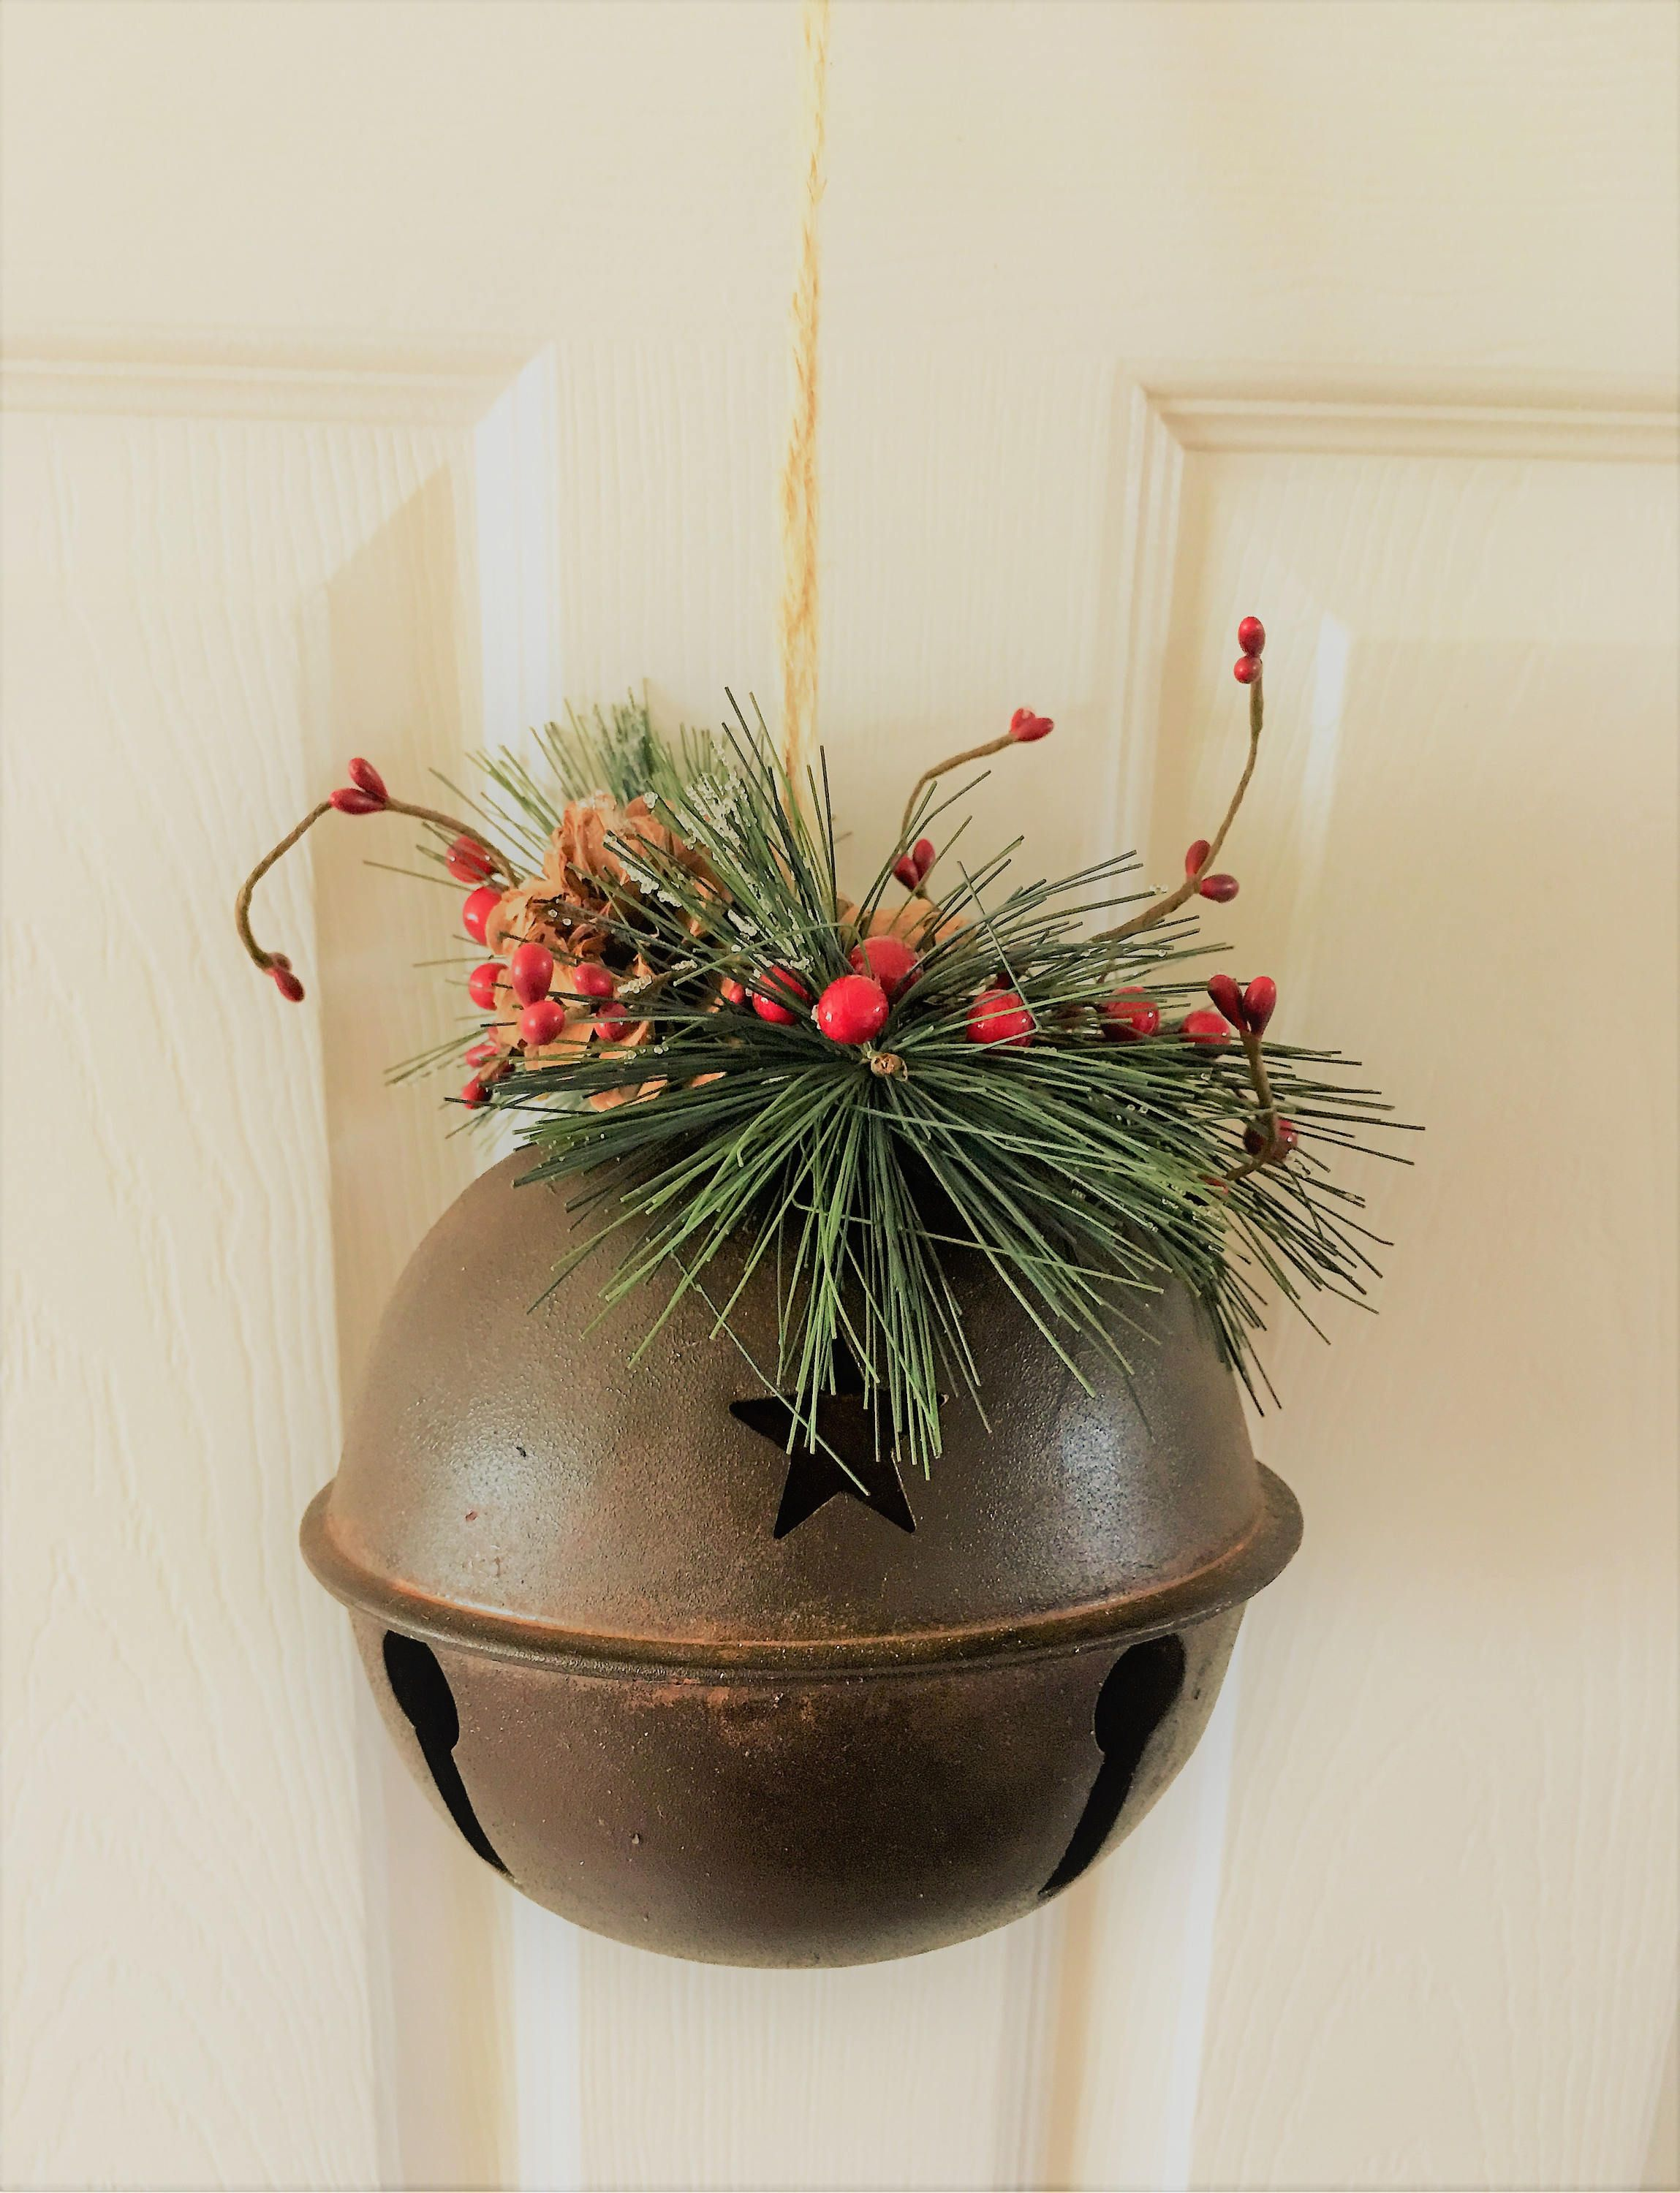 christmas jingle bell decorrustic jingle bellchirstmas bell ornamentlarge rustic jingle